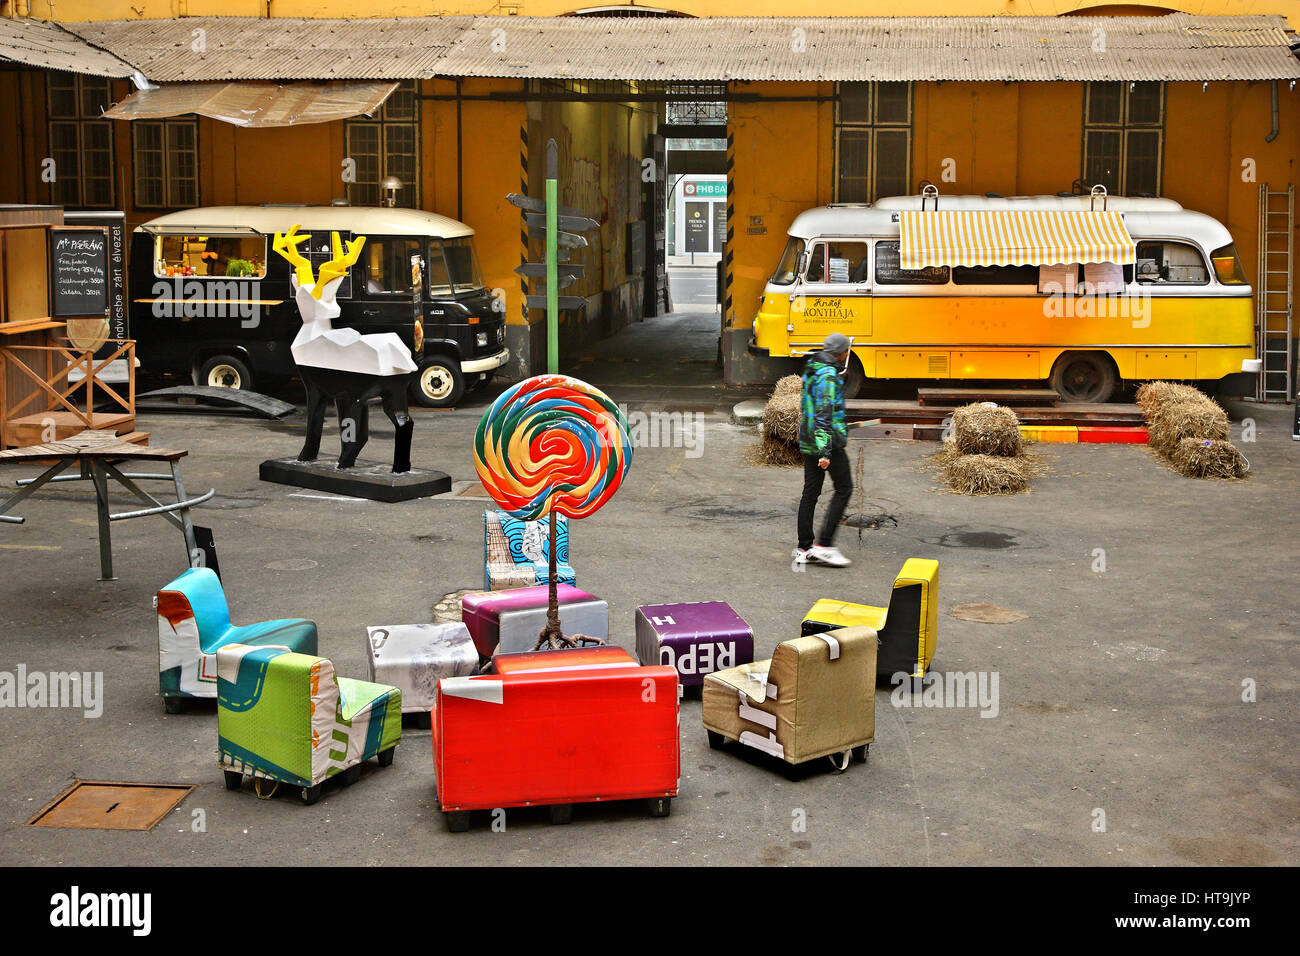 In Food Truck Udvar, an outdoor street food court, at Ferencvaros neighborhood (District 9), Budapest, Hungary - Stock Image